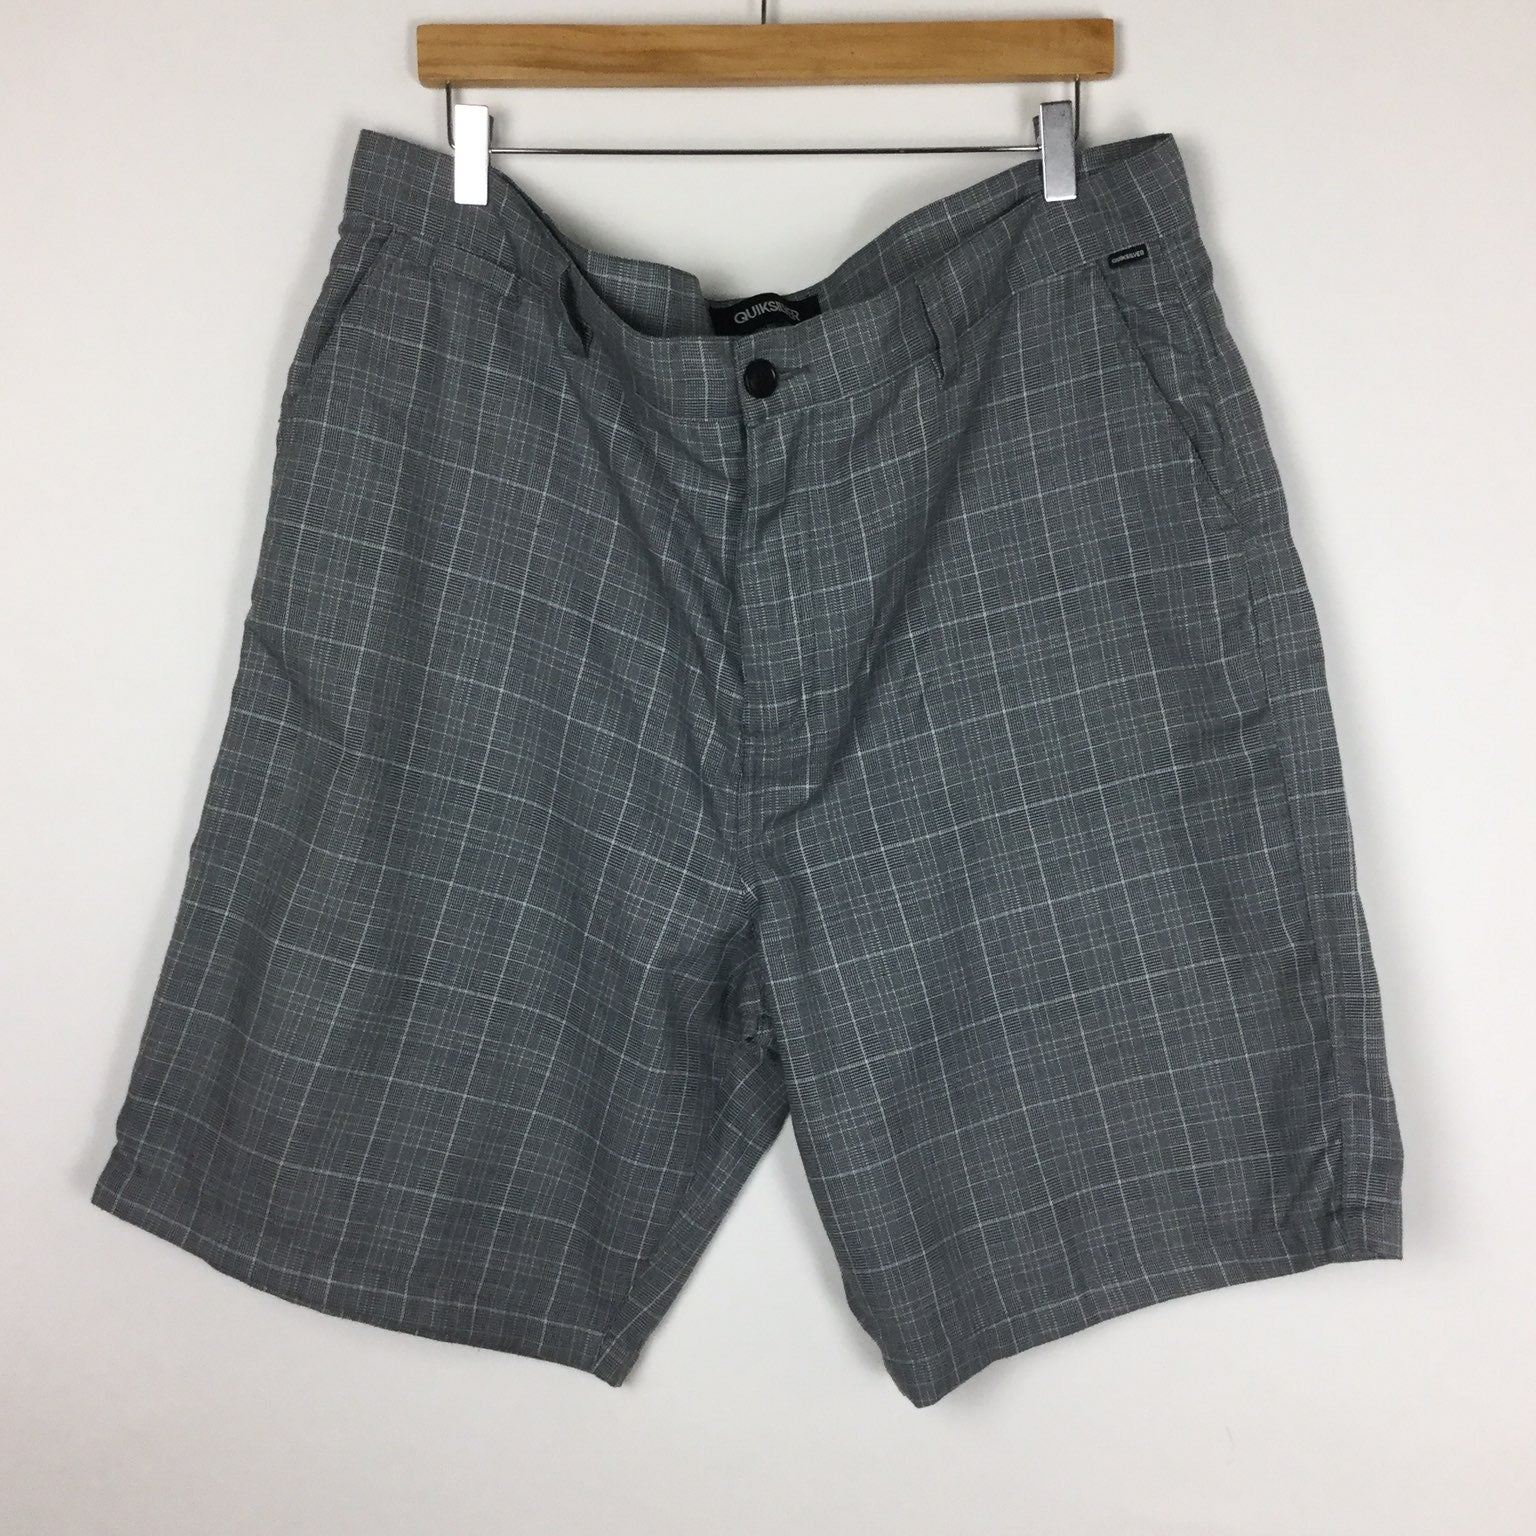 Quiksilver Gray Shorts Size 40